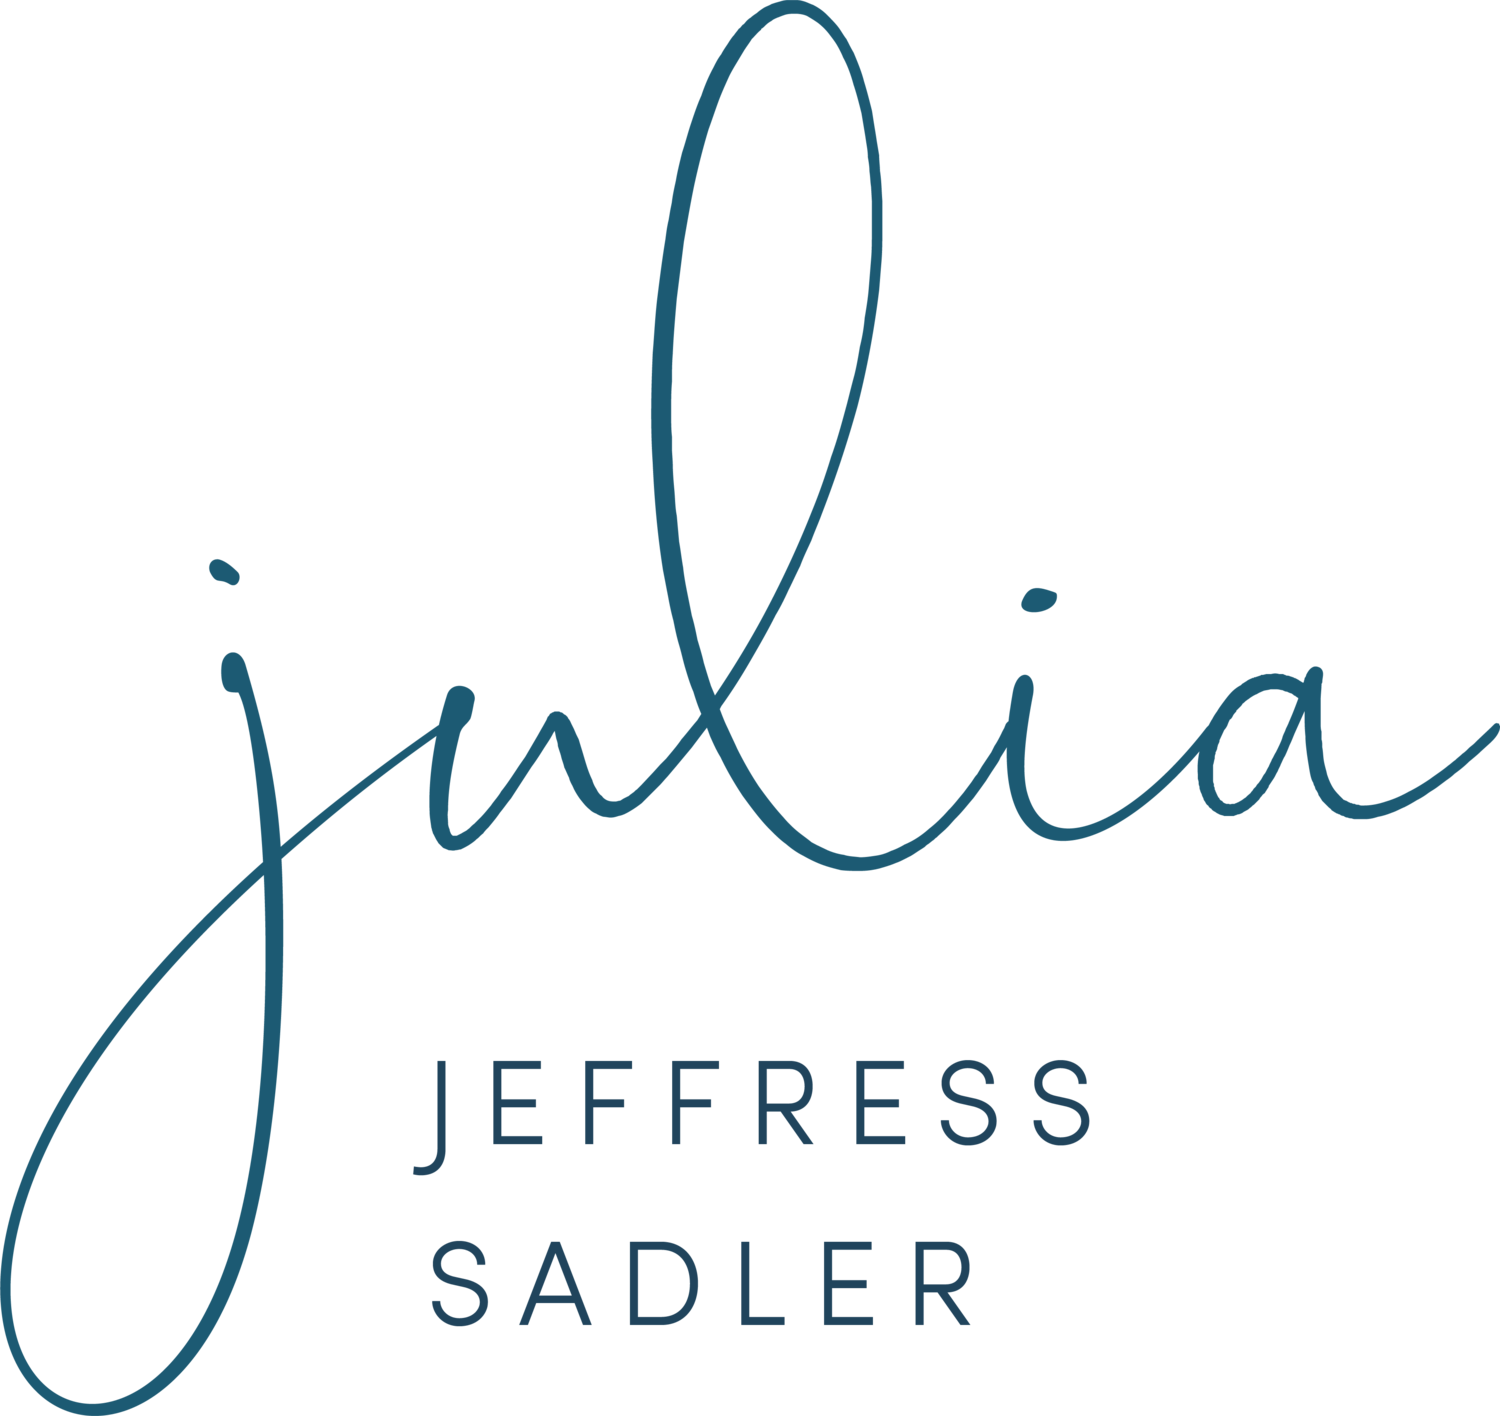 Julia Jeffress Sadler